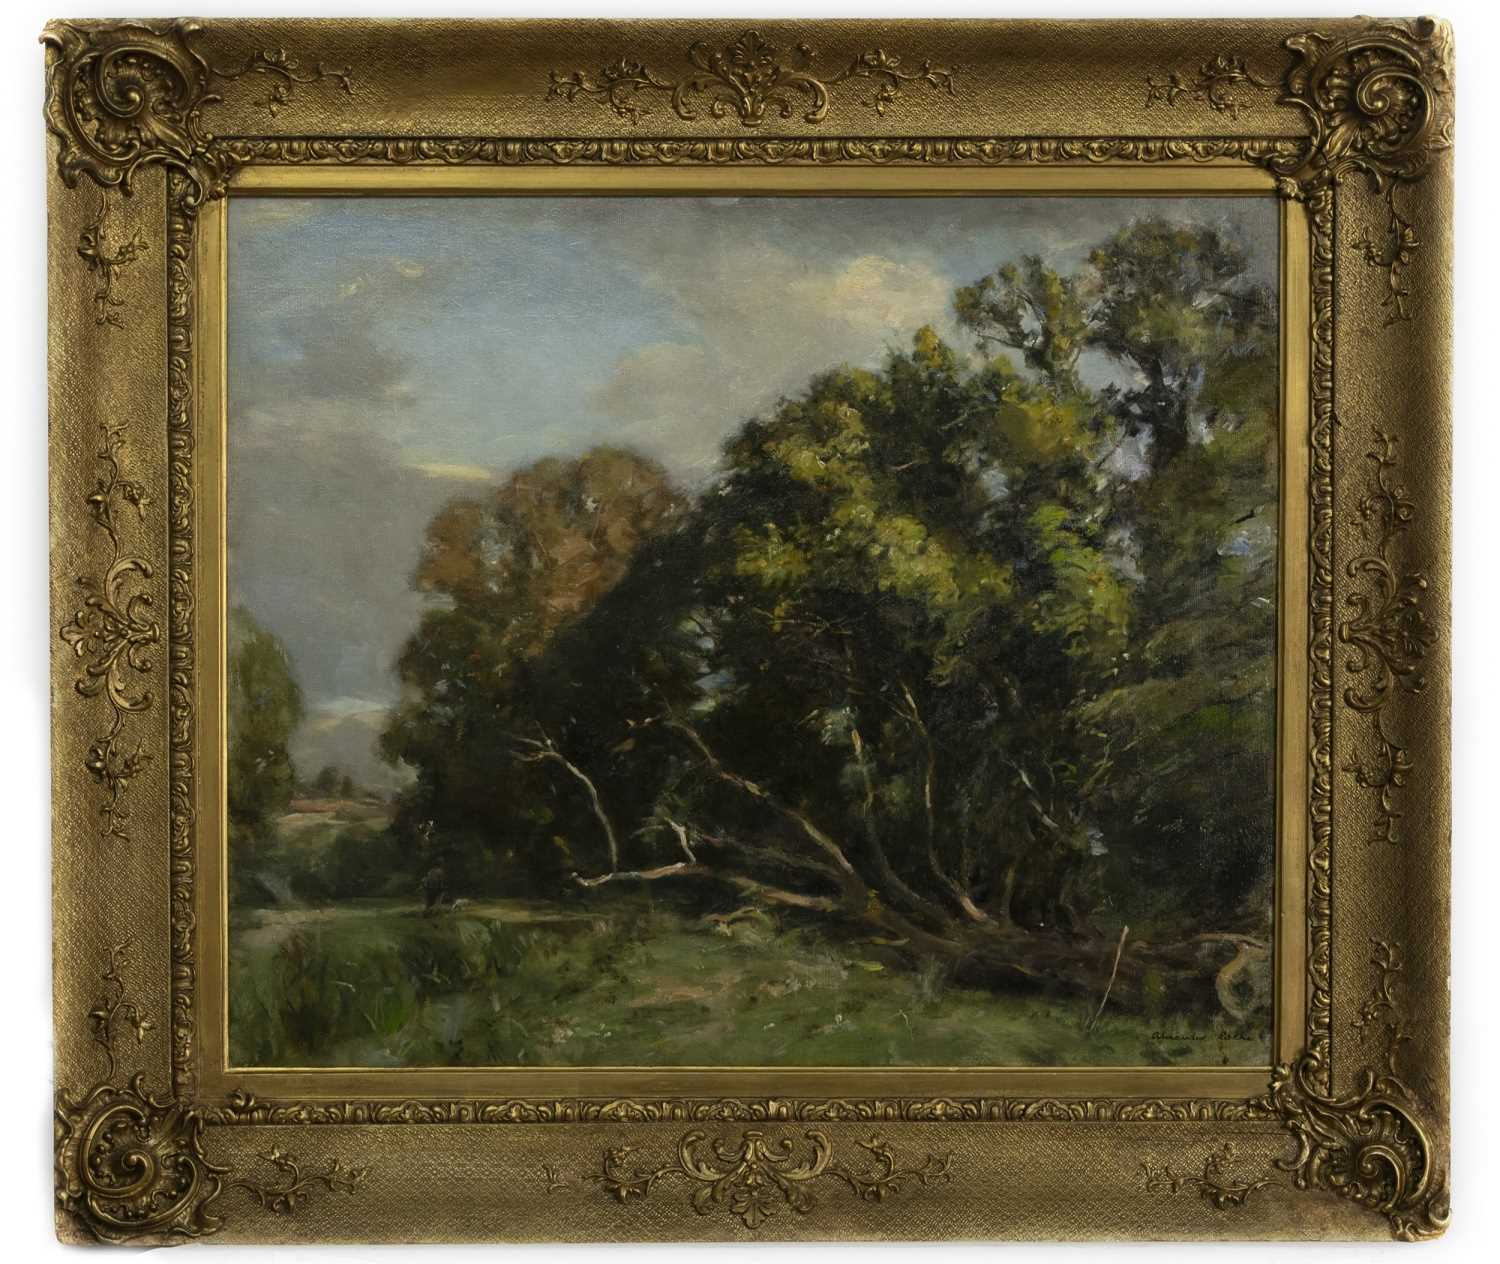 Lot 180 - THE WALK TO THE RIVER, AN OIL BY ALEXANDER IGNATIUS ROCHE